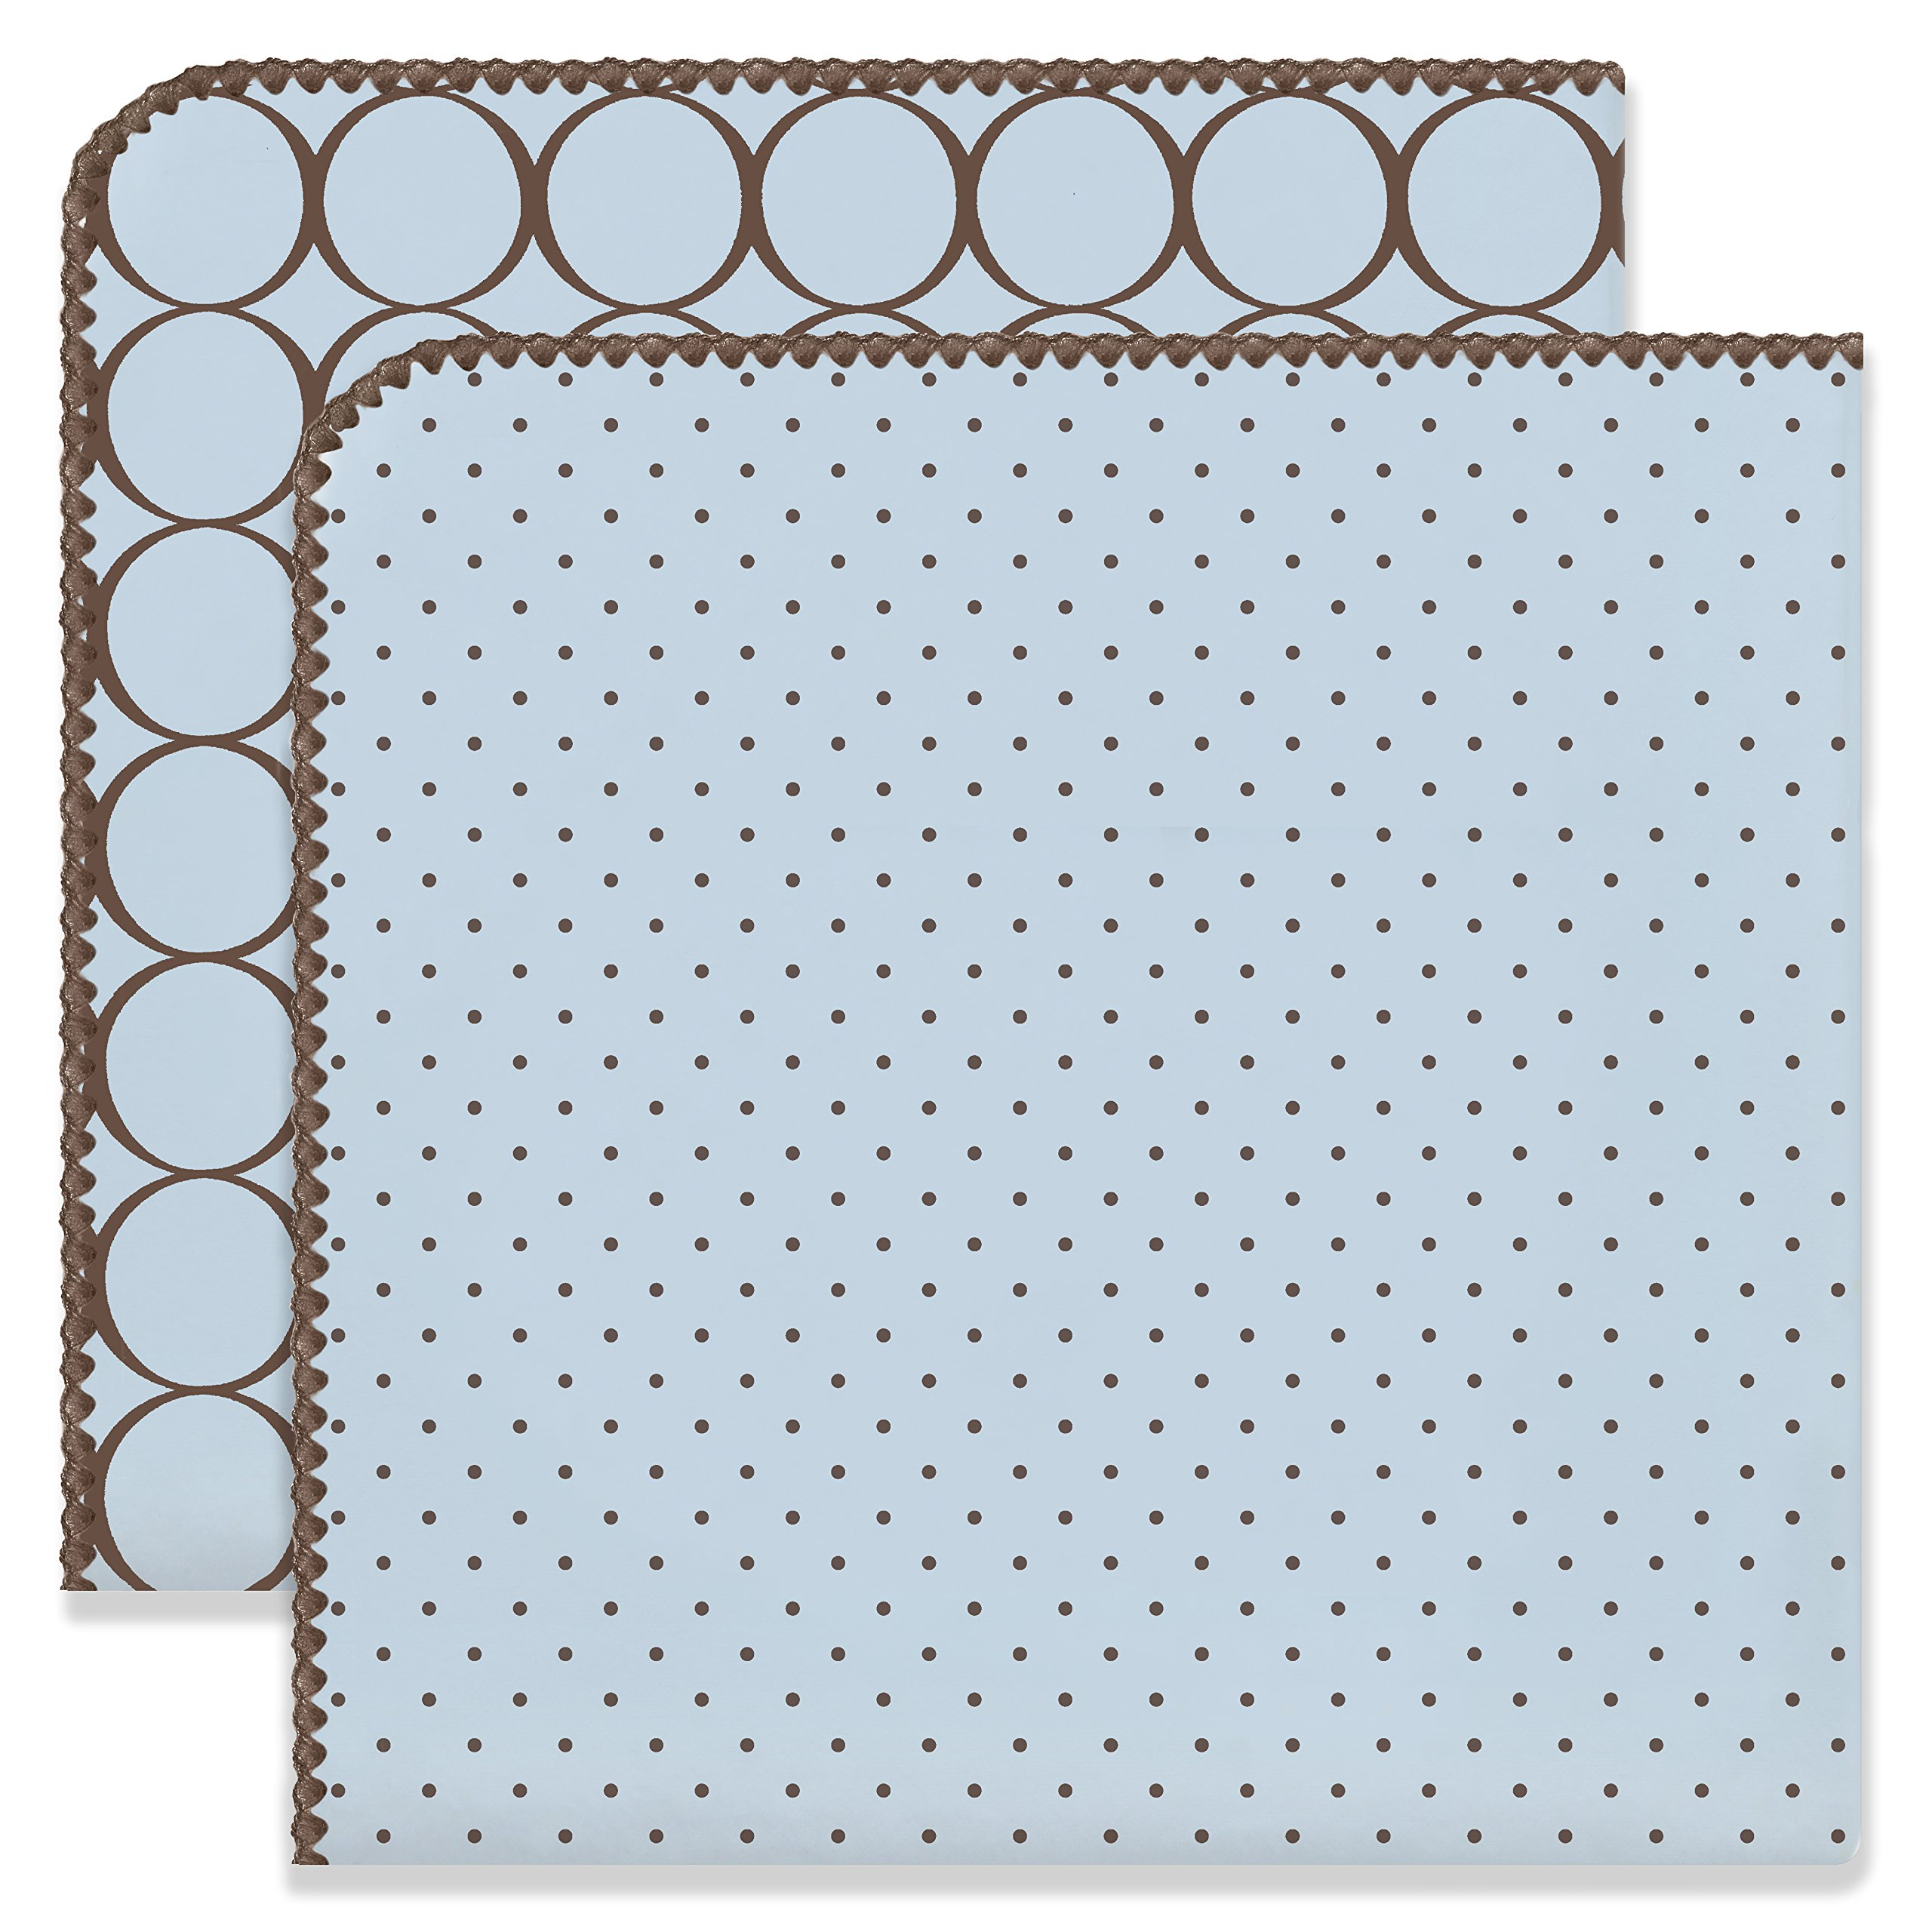 SwaddleDesigns Ultimate Swaddle Blankets, Set of 2, Mod Circles and Polka Dots, Pastel Blue (Mom's Choice Award Winner)